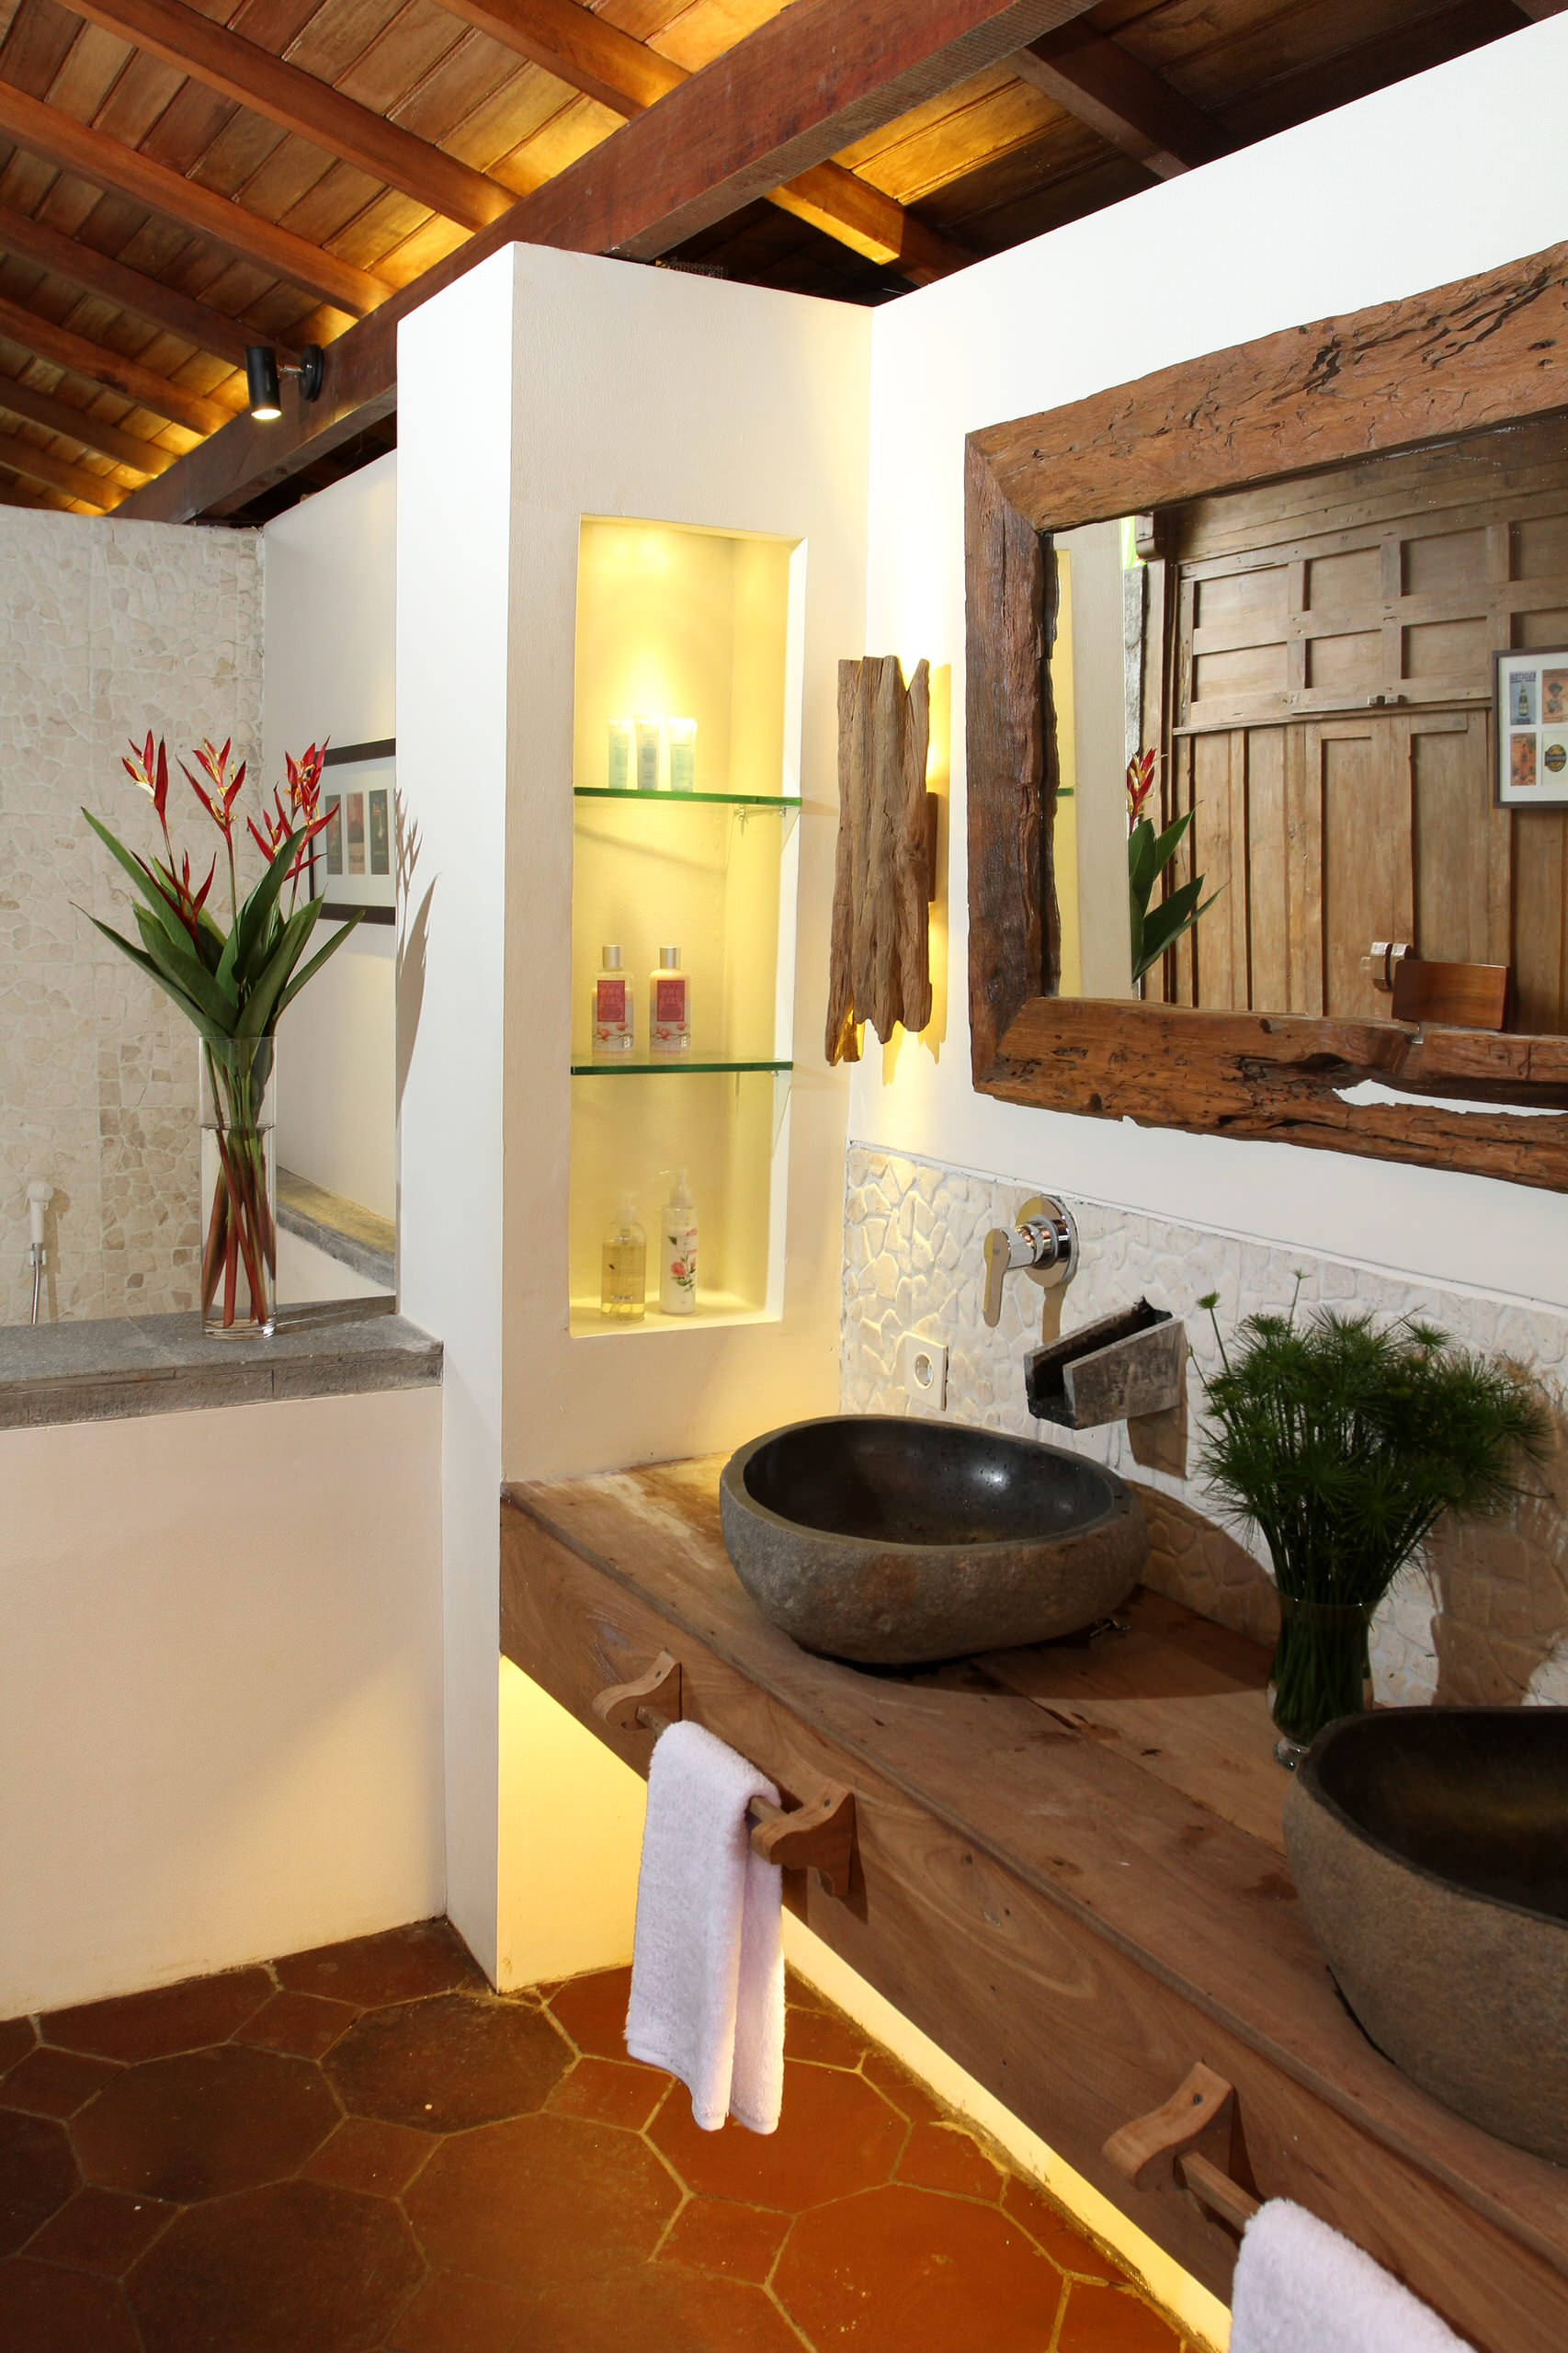 75 Beautiful Tropical Bathroom Pictures Ideas April 2021 Houzz